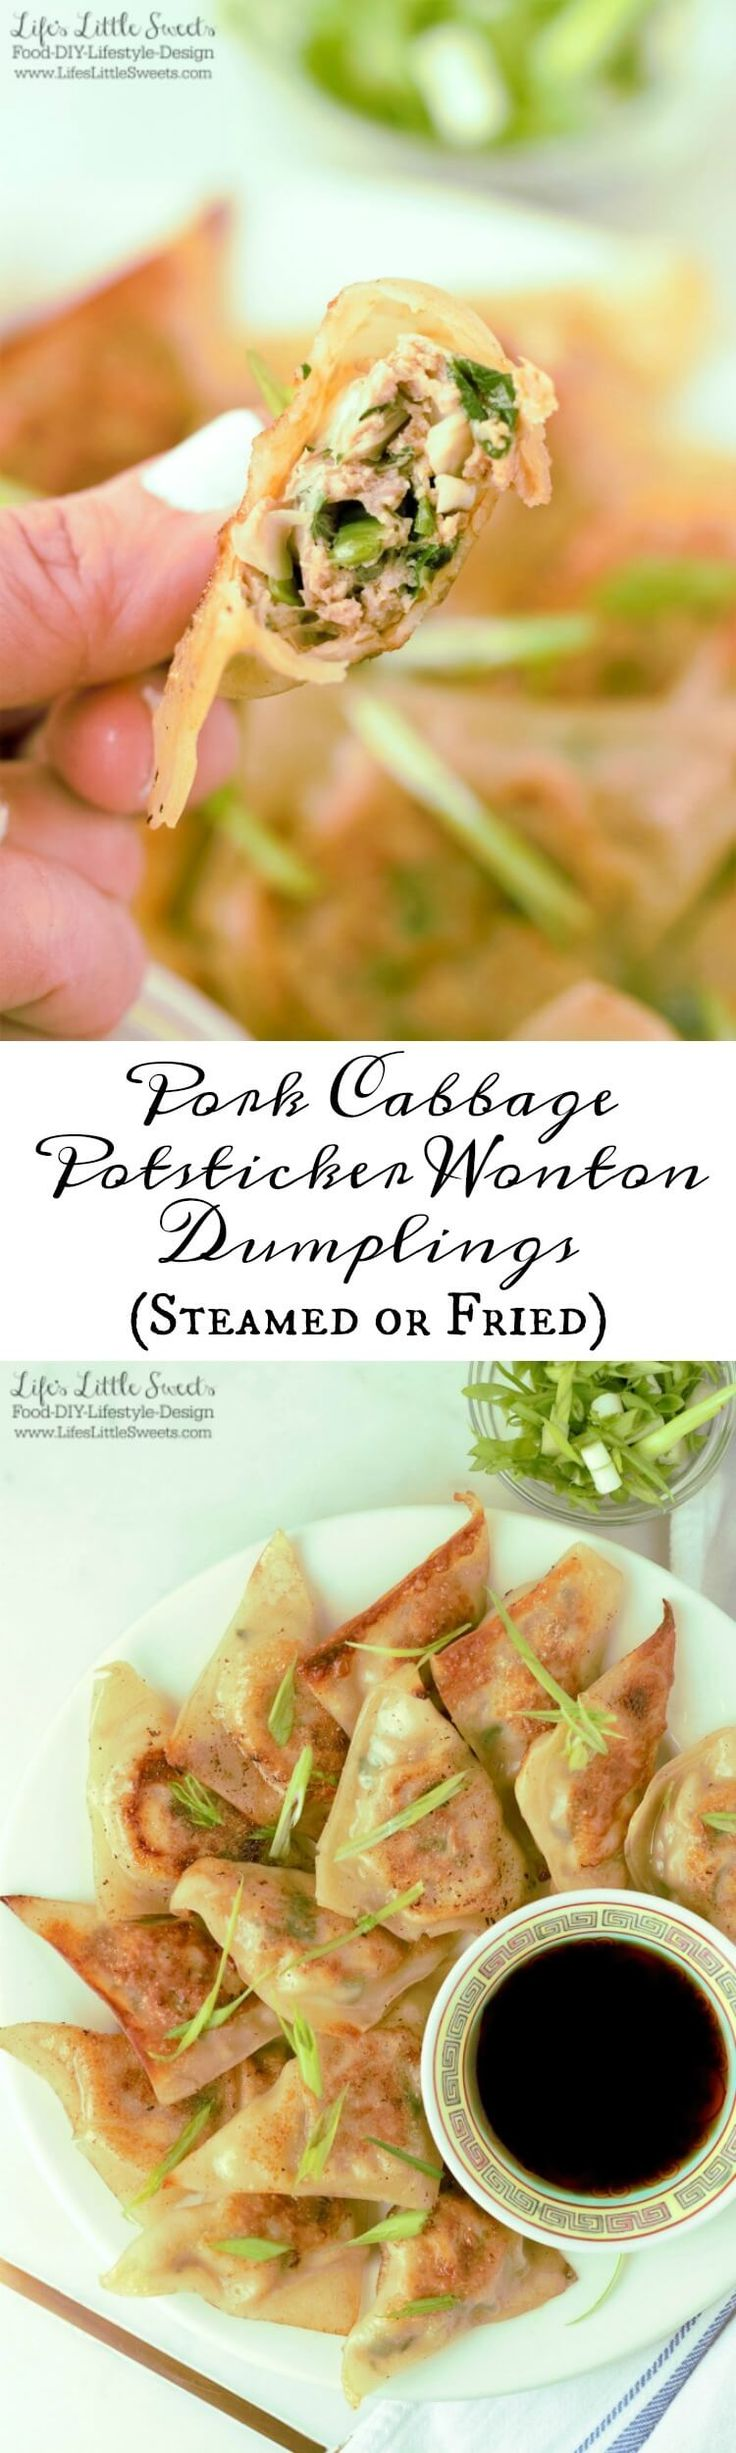 Pork Cabbage Potsticker Wonton Dumplings (Steamed or Fried) are savory pockets of deliciousness. Enjoy them when entertaining, game day or as a main dish. This is a versatile, approachable, dumpling recipe.